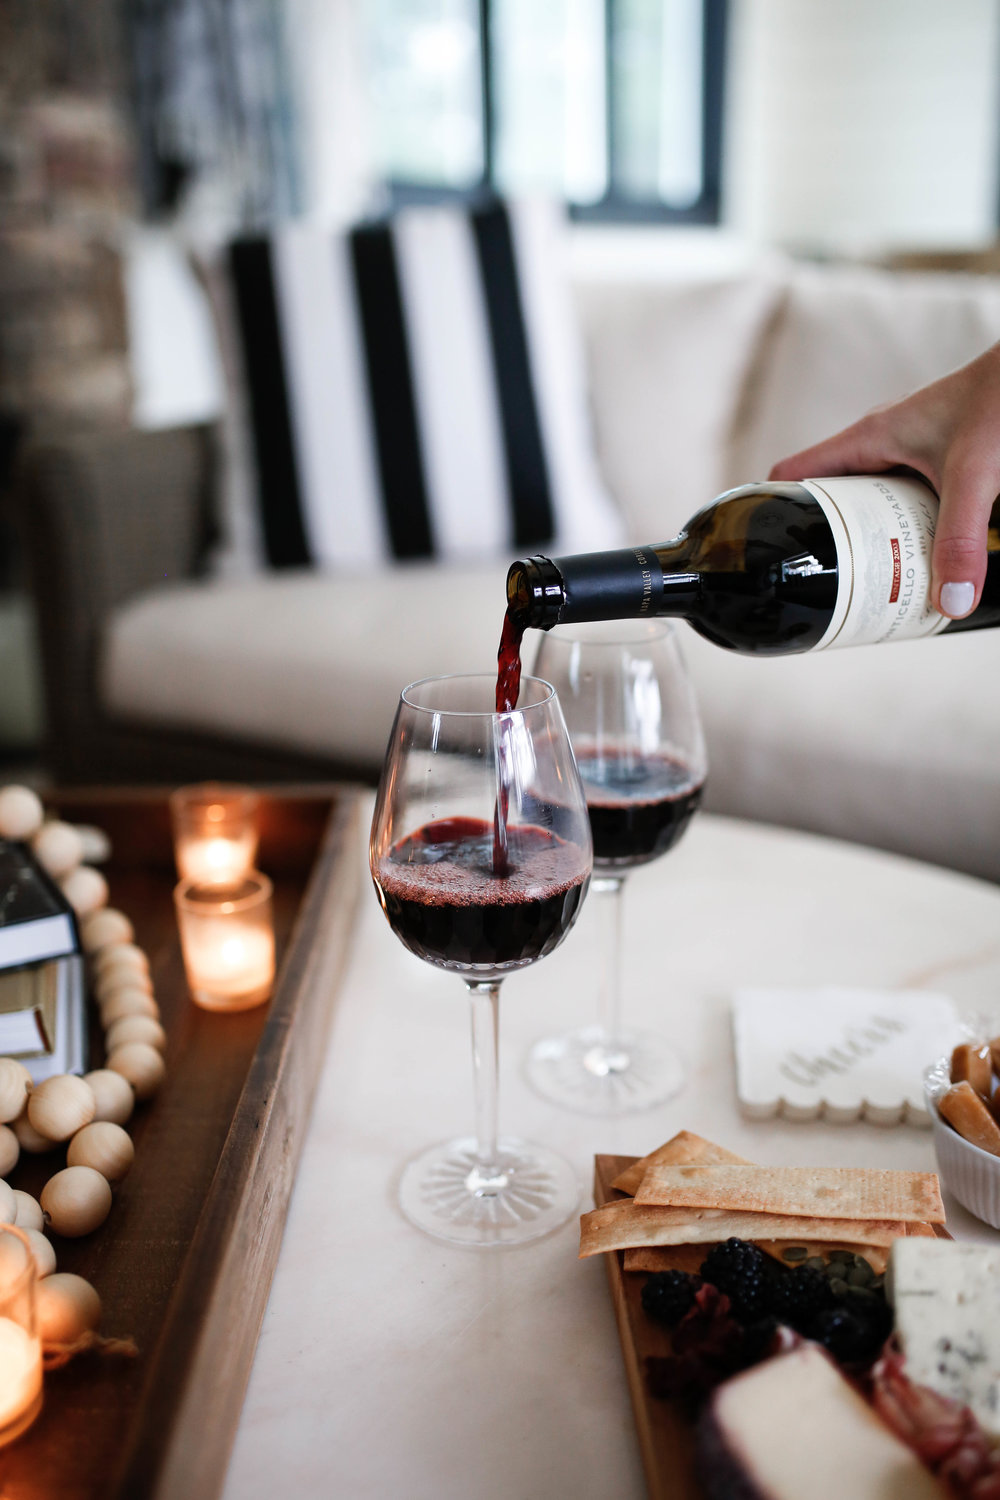 HOW TO CREATE THE PERFECT AT HOME DATE NIGHT